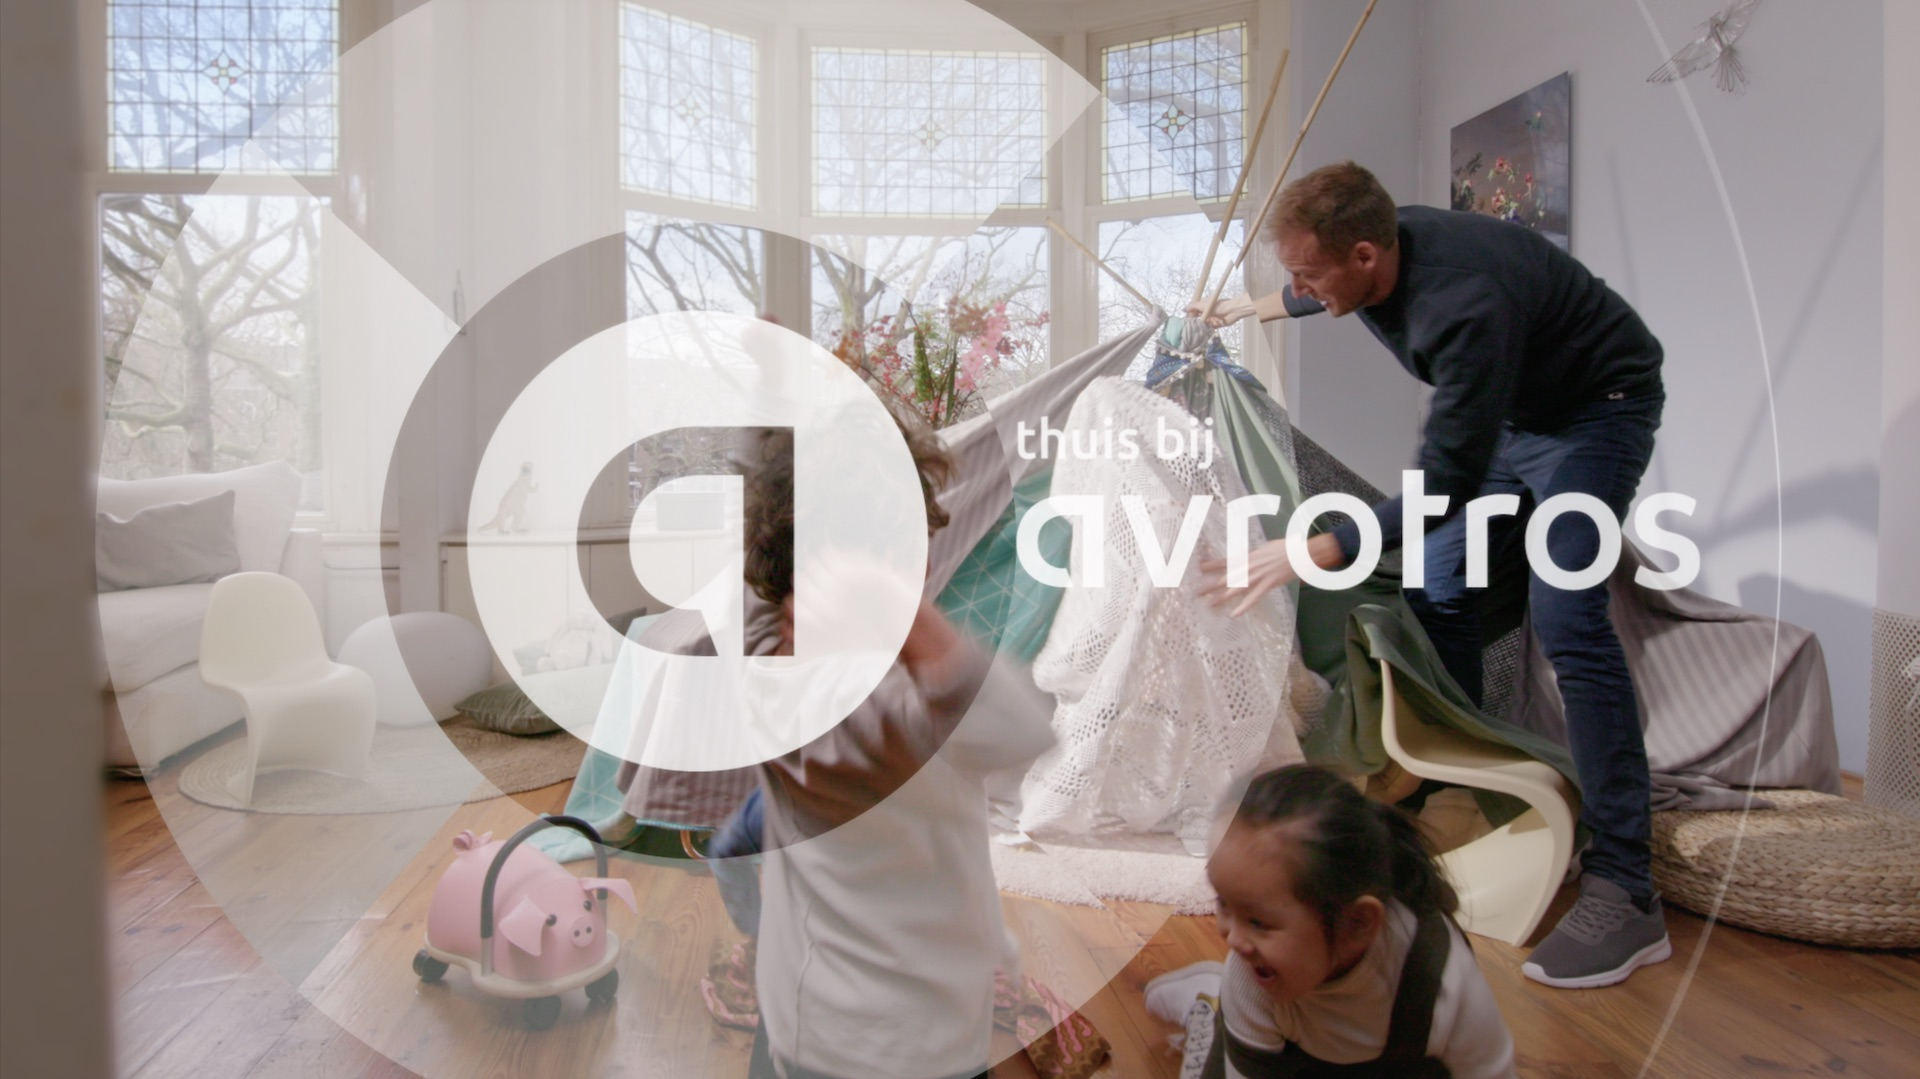 at home with avrotros thuis bij opener leader ident bumper logo